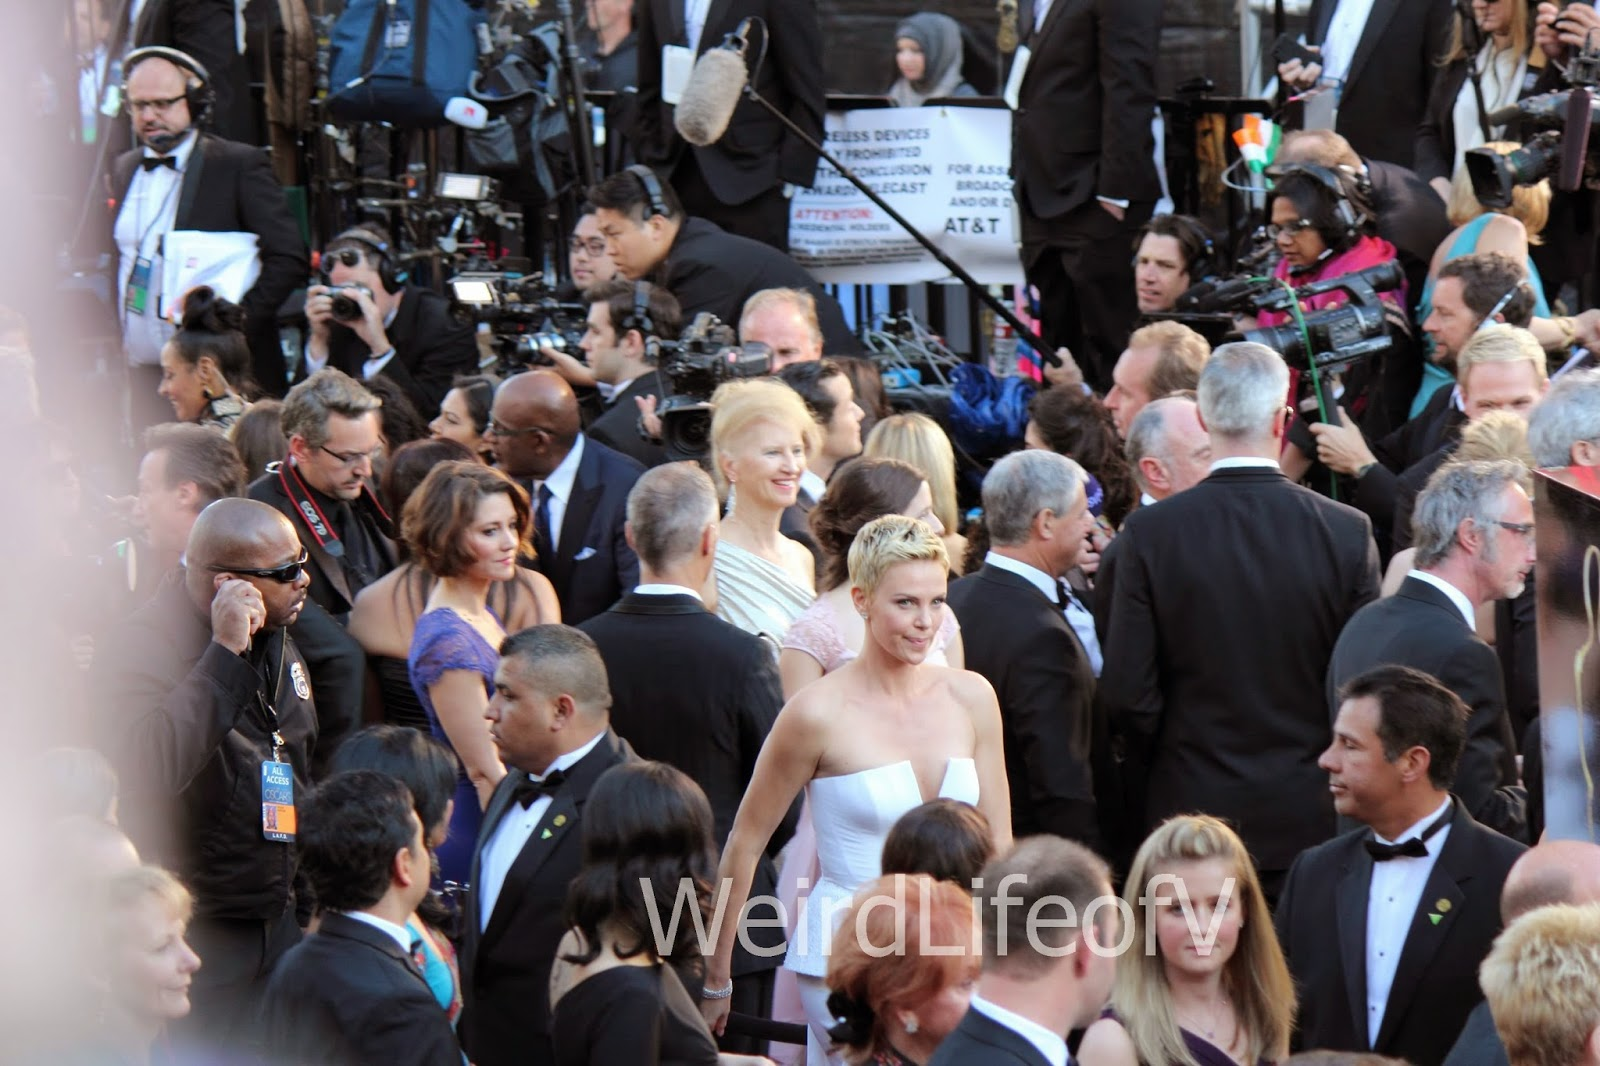 Charlize Theron rushing through the crowd